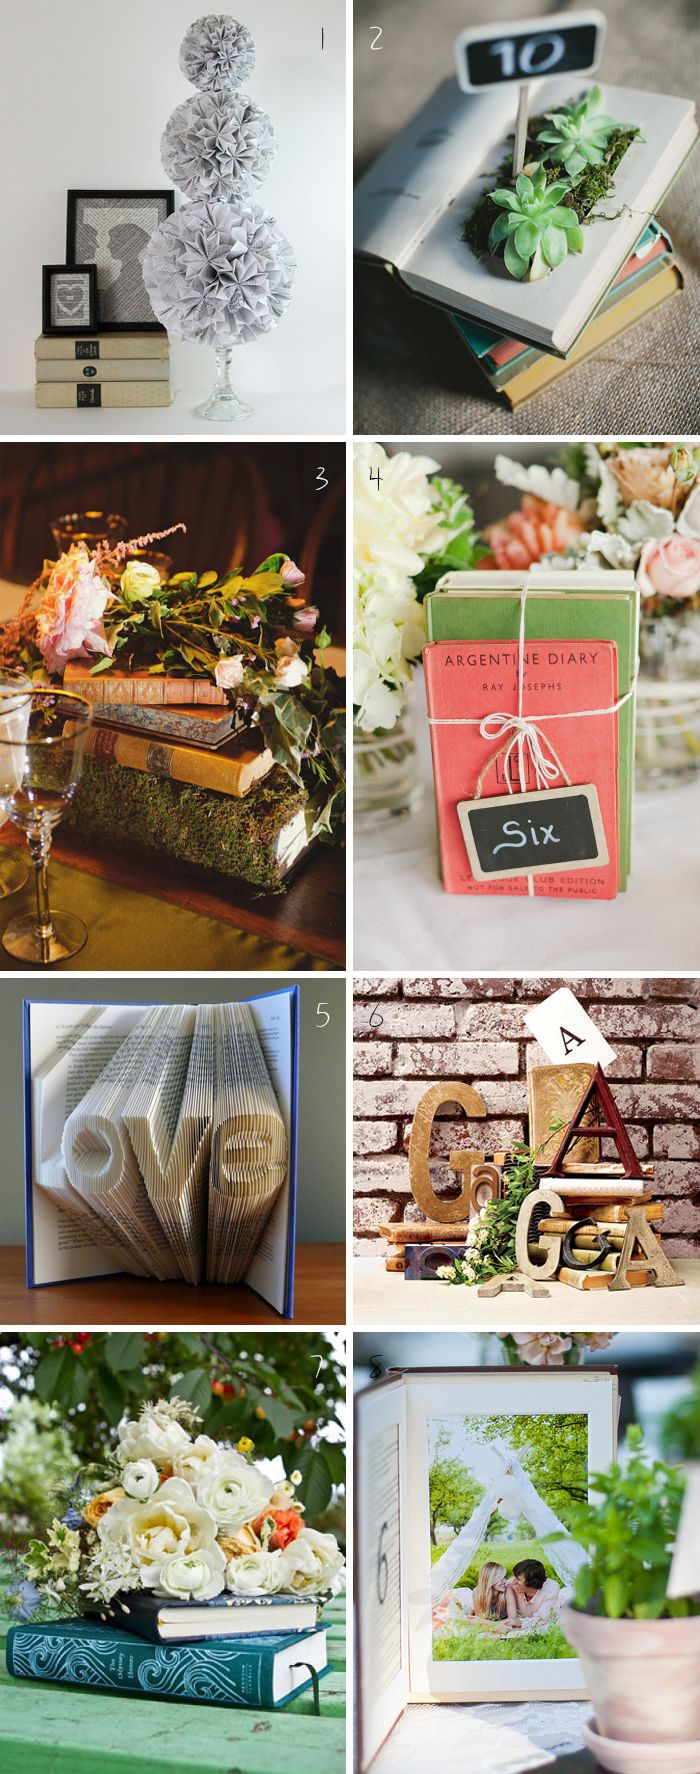 9 Book Themed Wedding Centerpieces